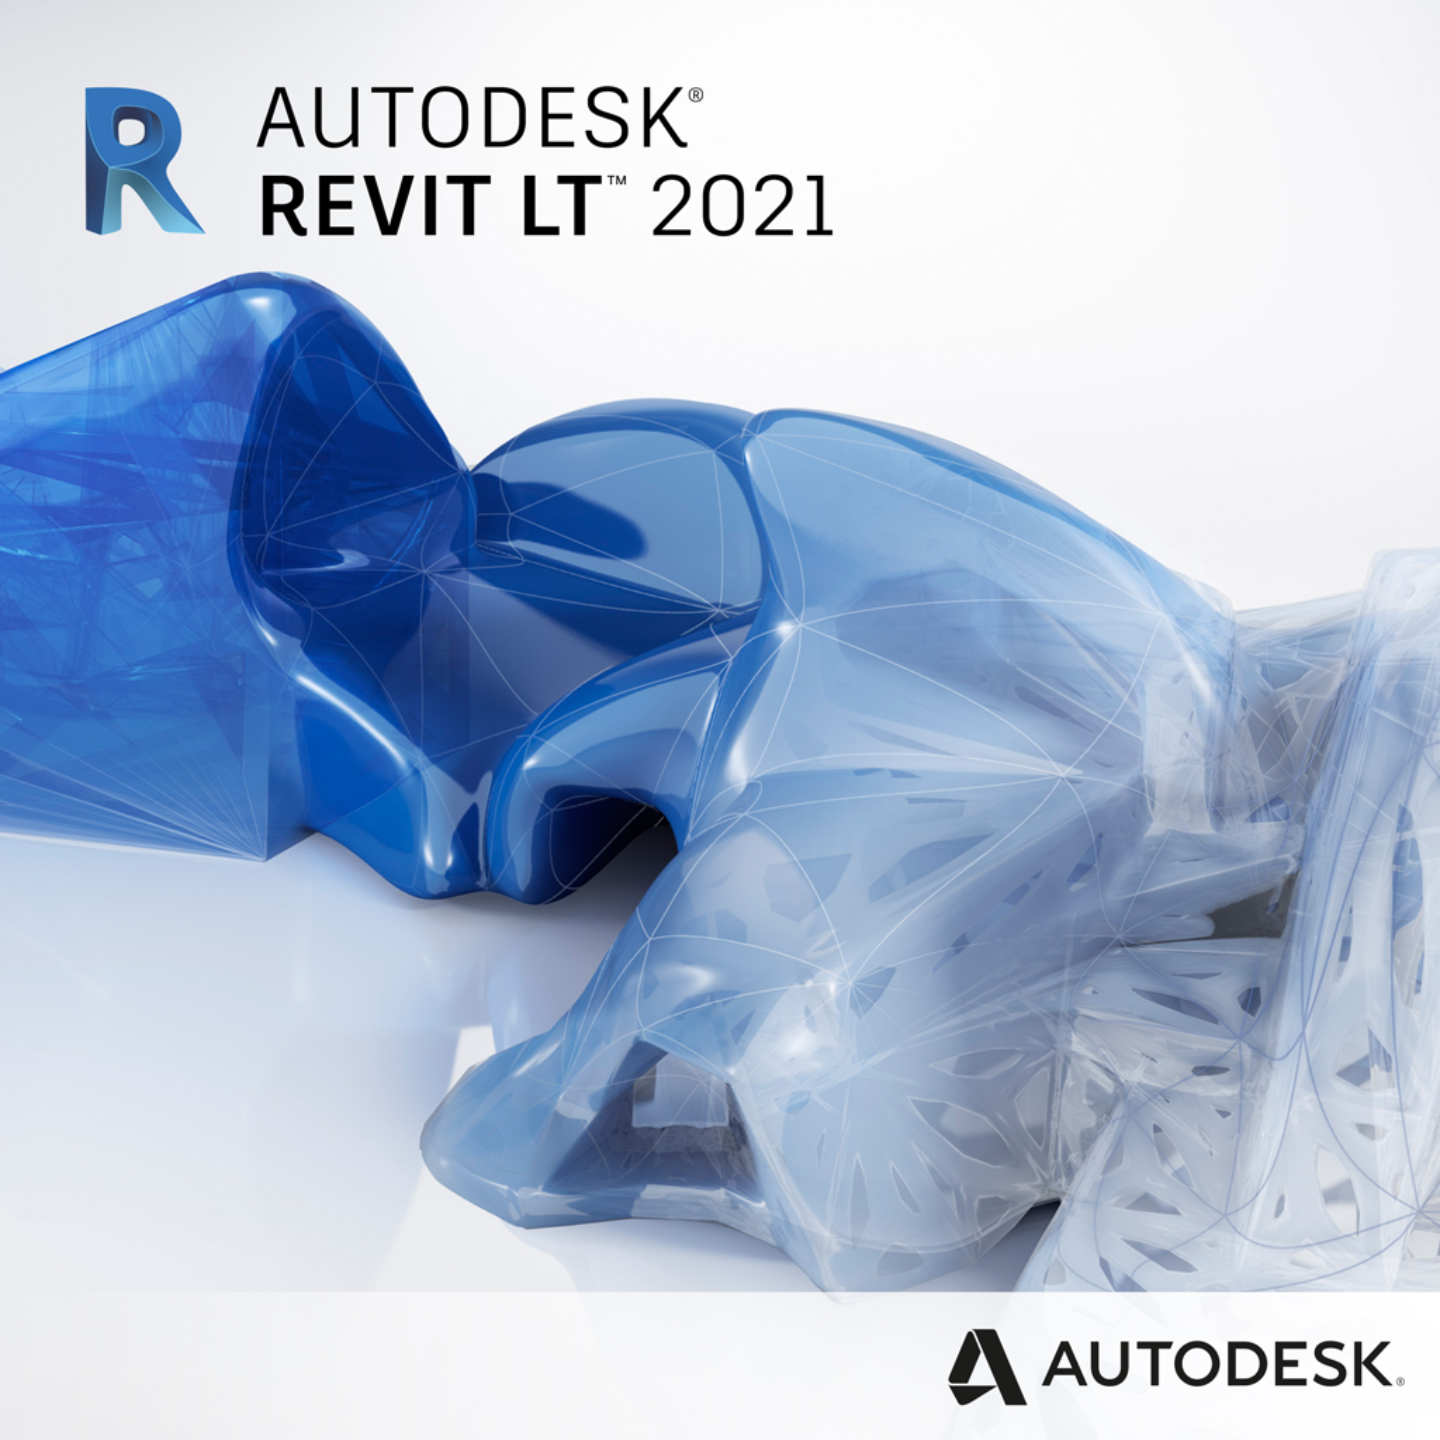 Autodesk Autocad Revit LT Suite 2021 (3-Year Subscription)